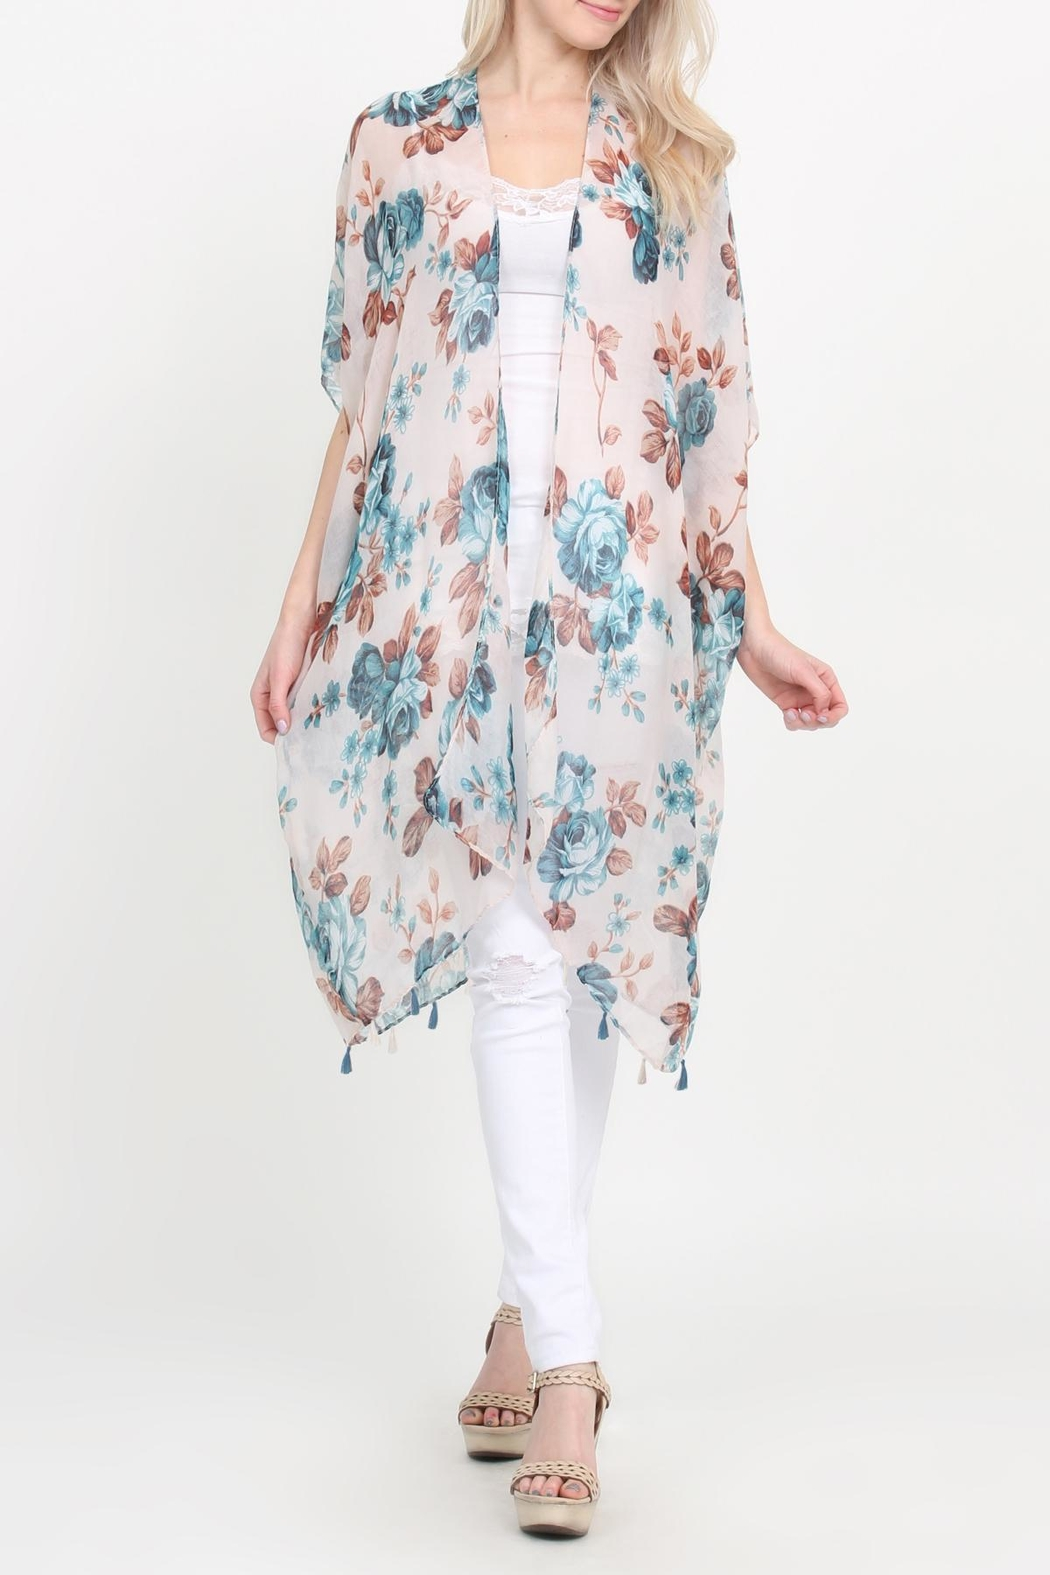 Riah Fashion Open-Front Knee-Length Floral-Cardigan - Main Image